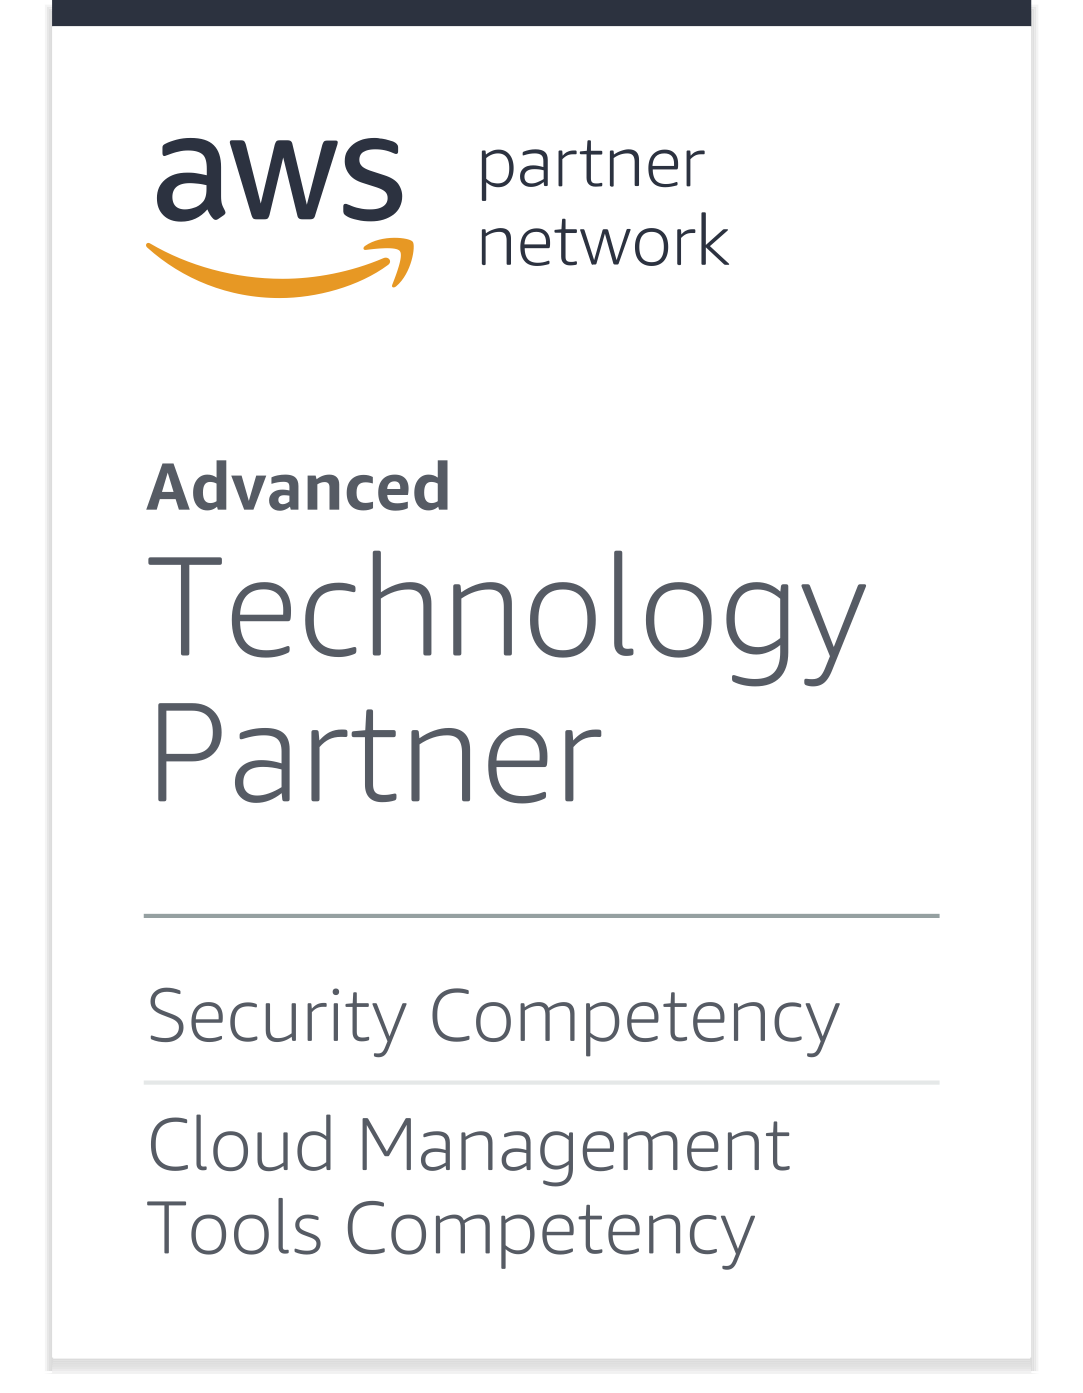 Cloud Conformity is an Advanced Technology Partner, Security and Cloud Management Tools Competency